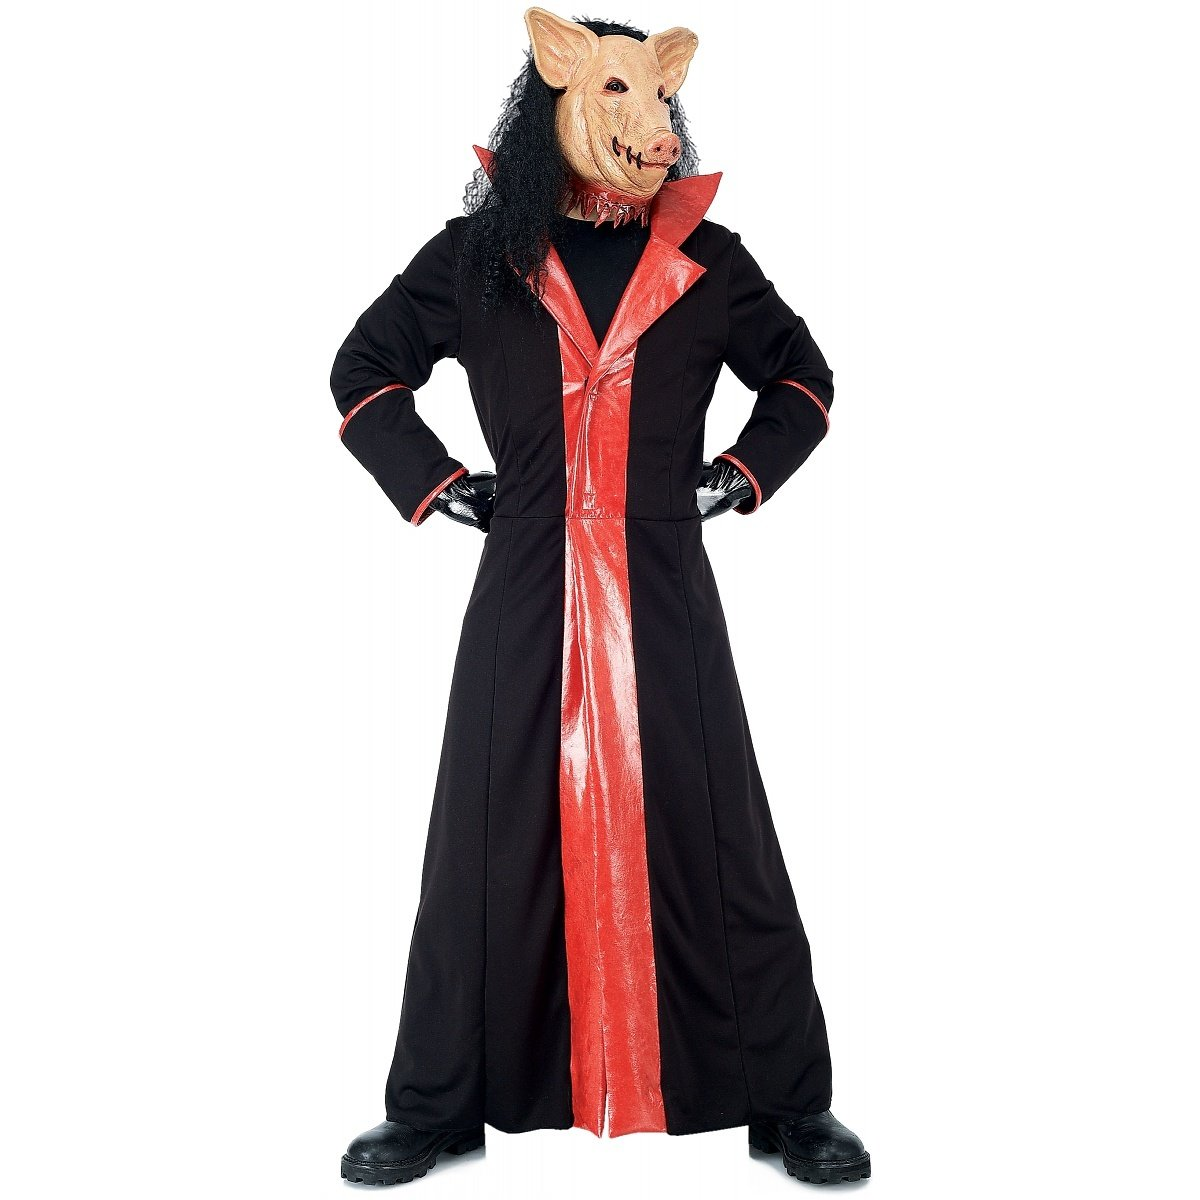 Amazon.com Paper Magic Menu0027s Jigsaw Adult Deluxe Pig Costume And MaskBlackMedium Clothing  sc 1 st  Amazon.com & Amazon.com: Paper Magic Menu0027s Jigsaw Adult Deluxe Pig Costume And ...